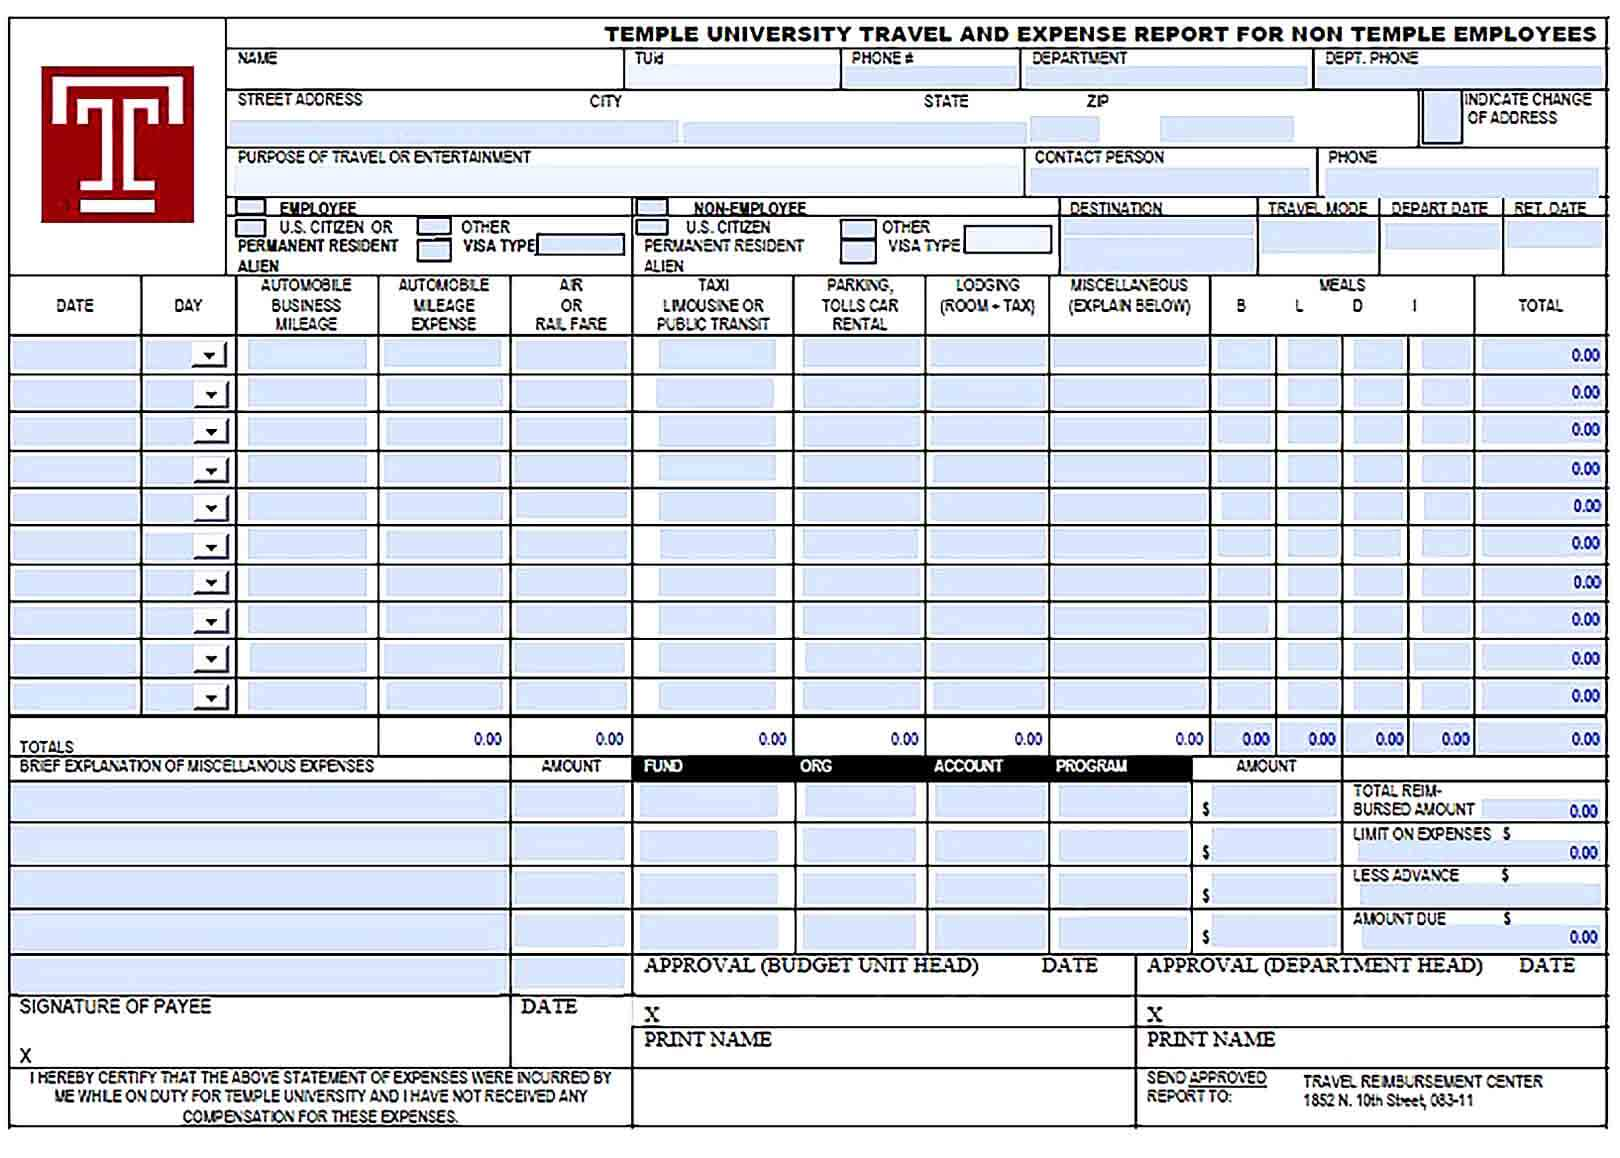 Sample Employee Travel and Expense Report